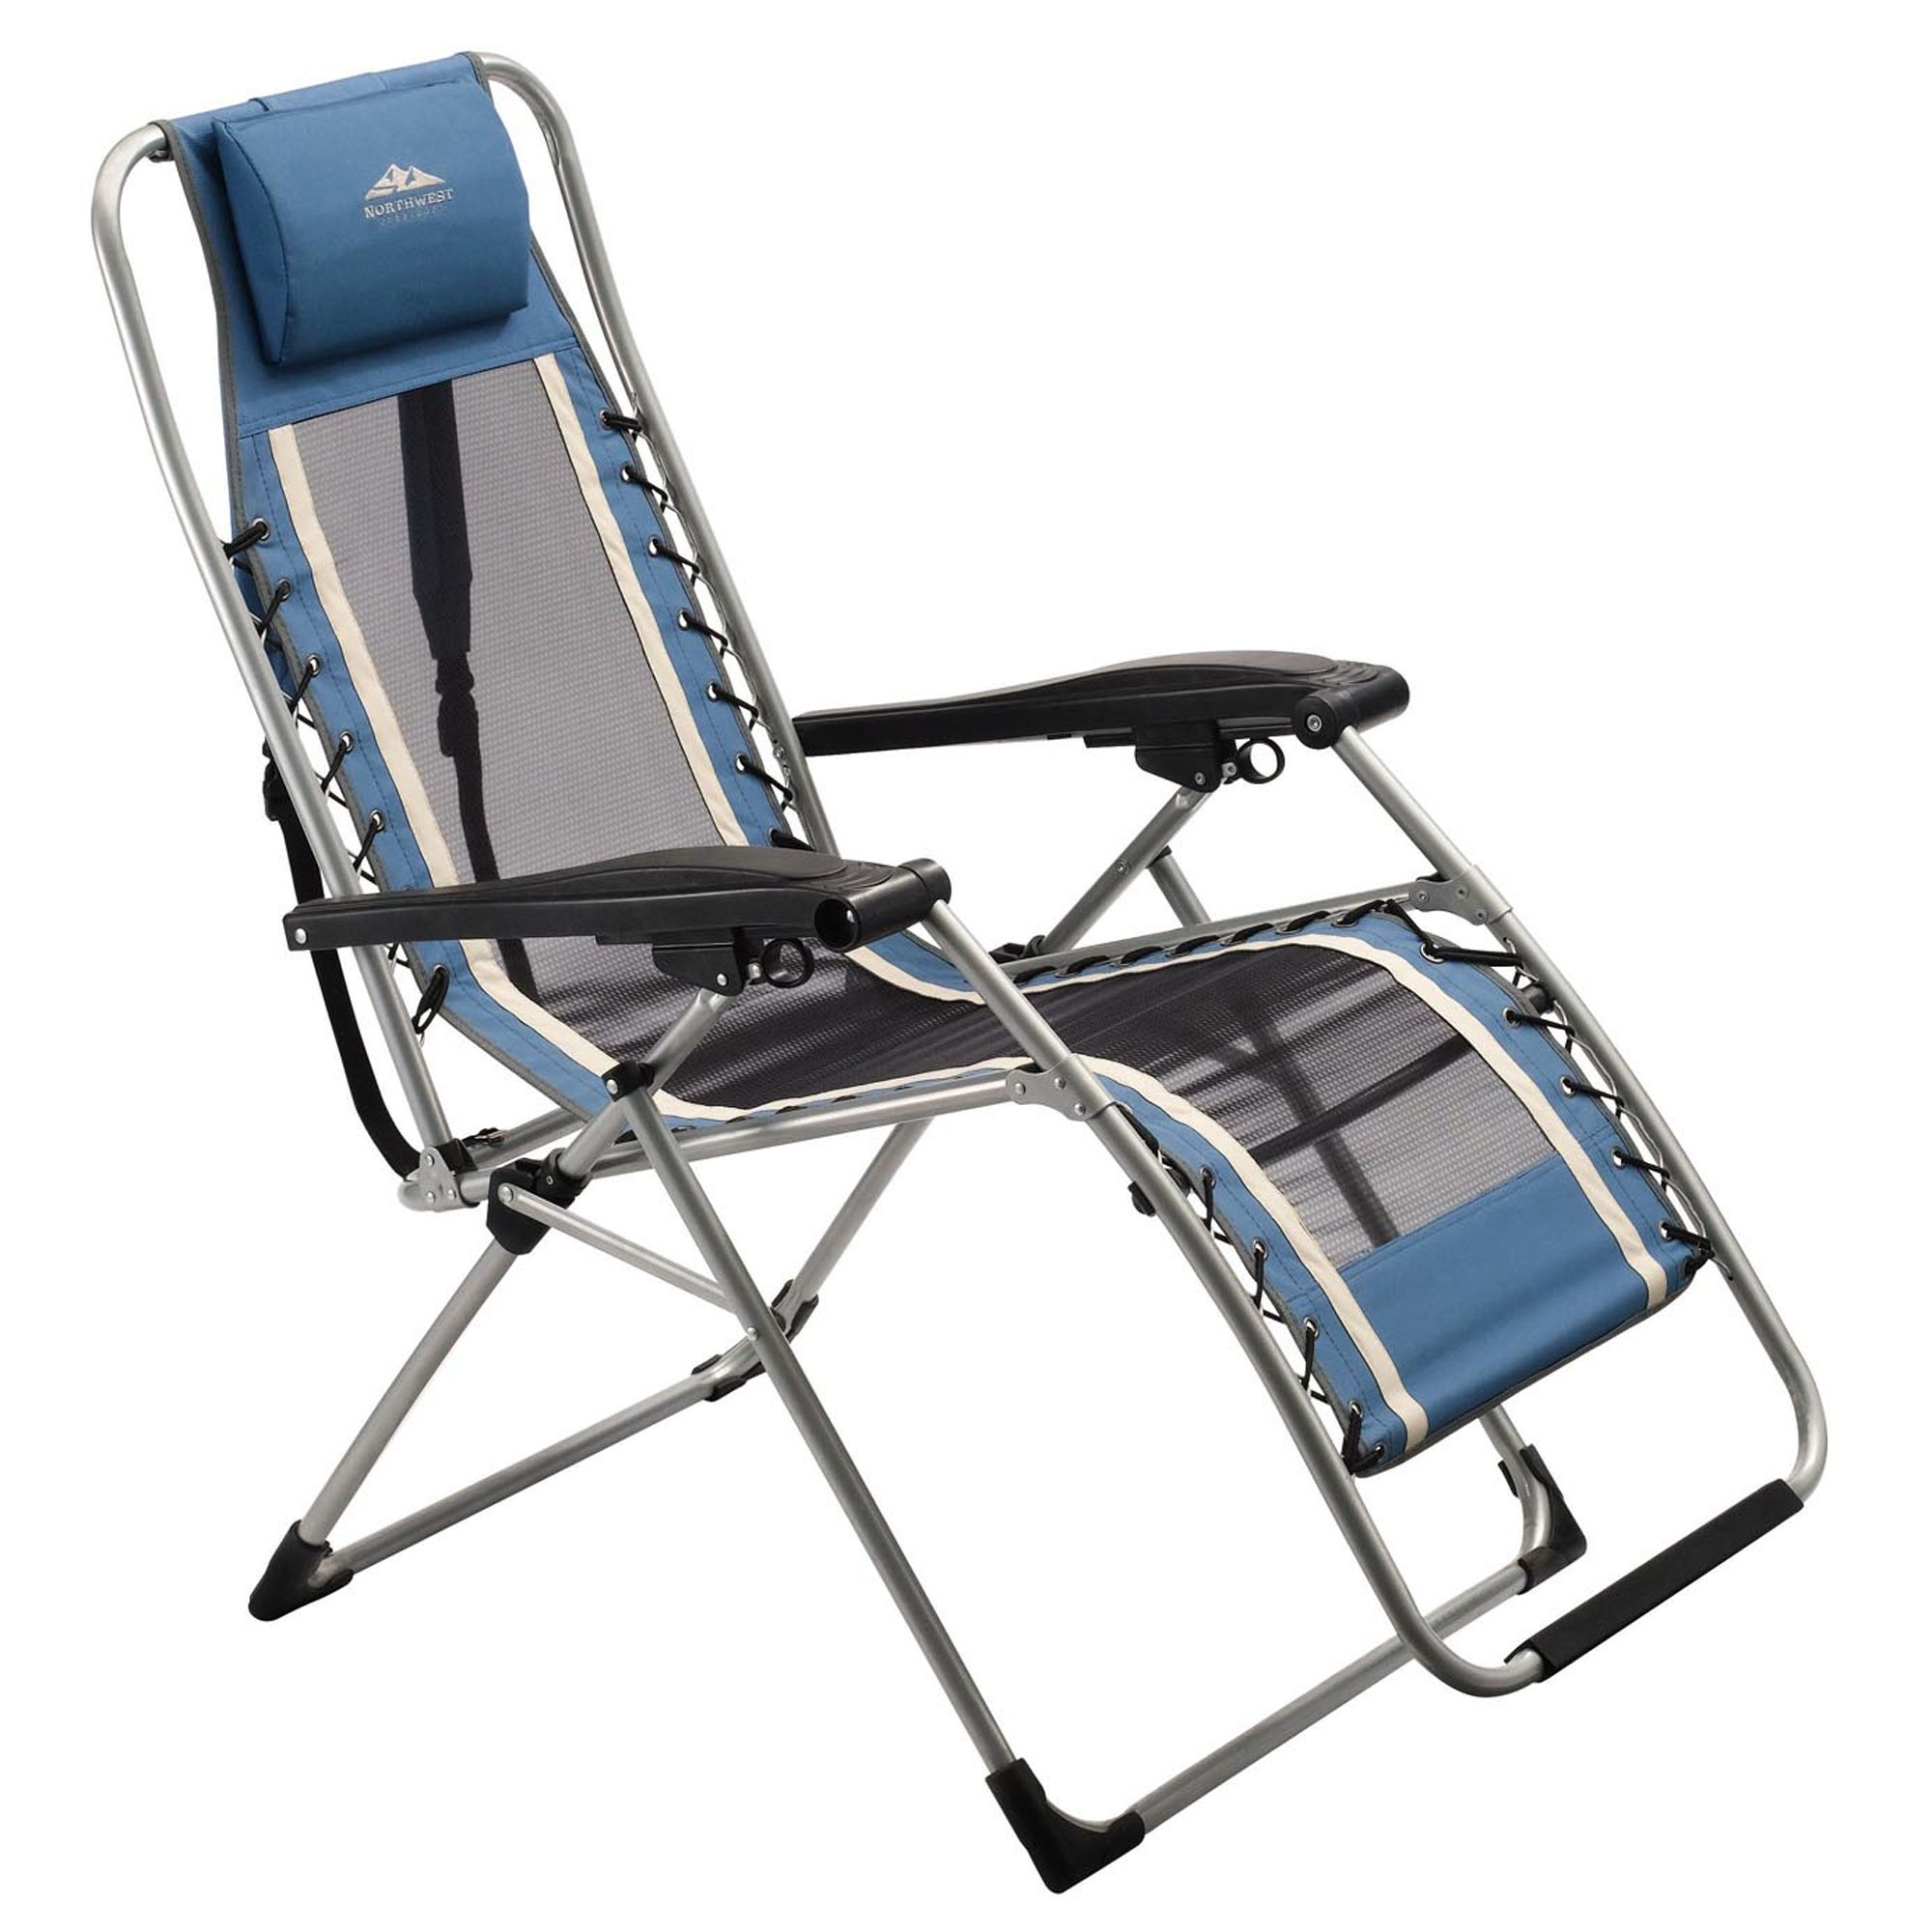 anti gravity lawn chair wooden beer barrel chairs northwest territory lounger fitness